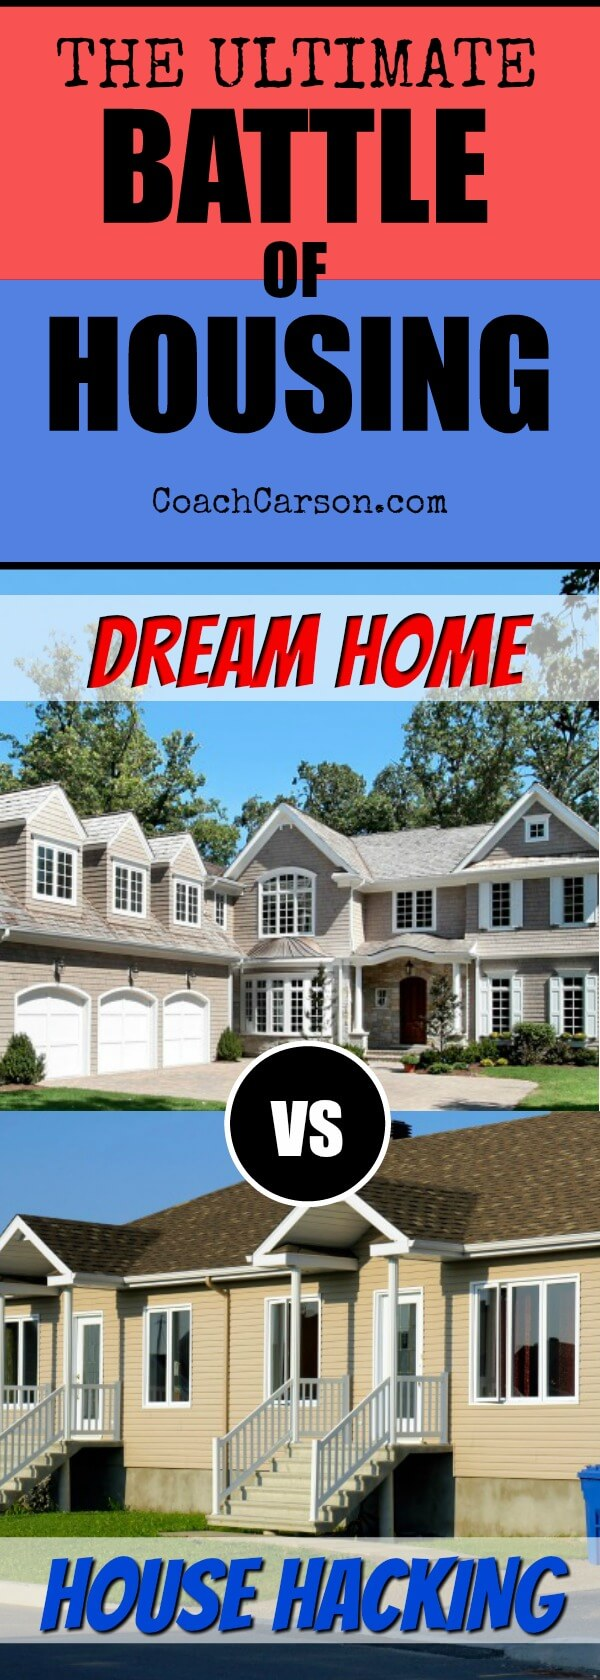 Housing Battle - Dream Home vs House Hacking